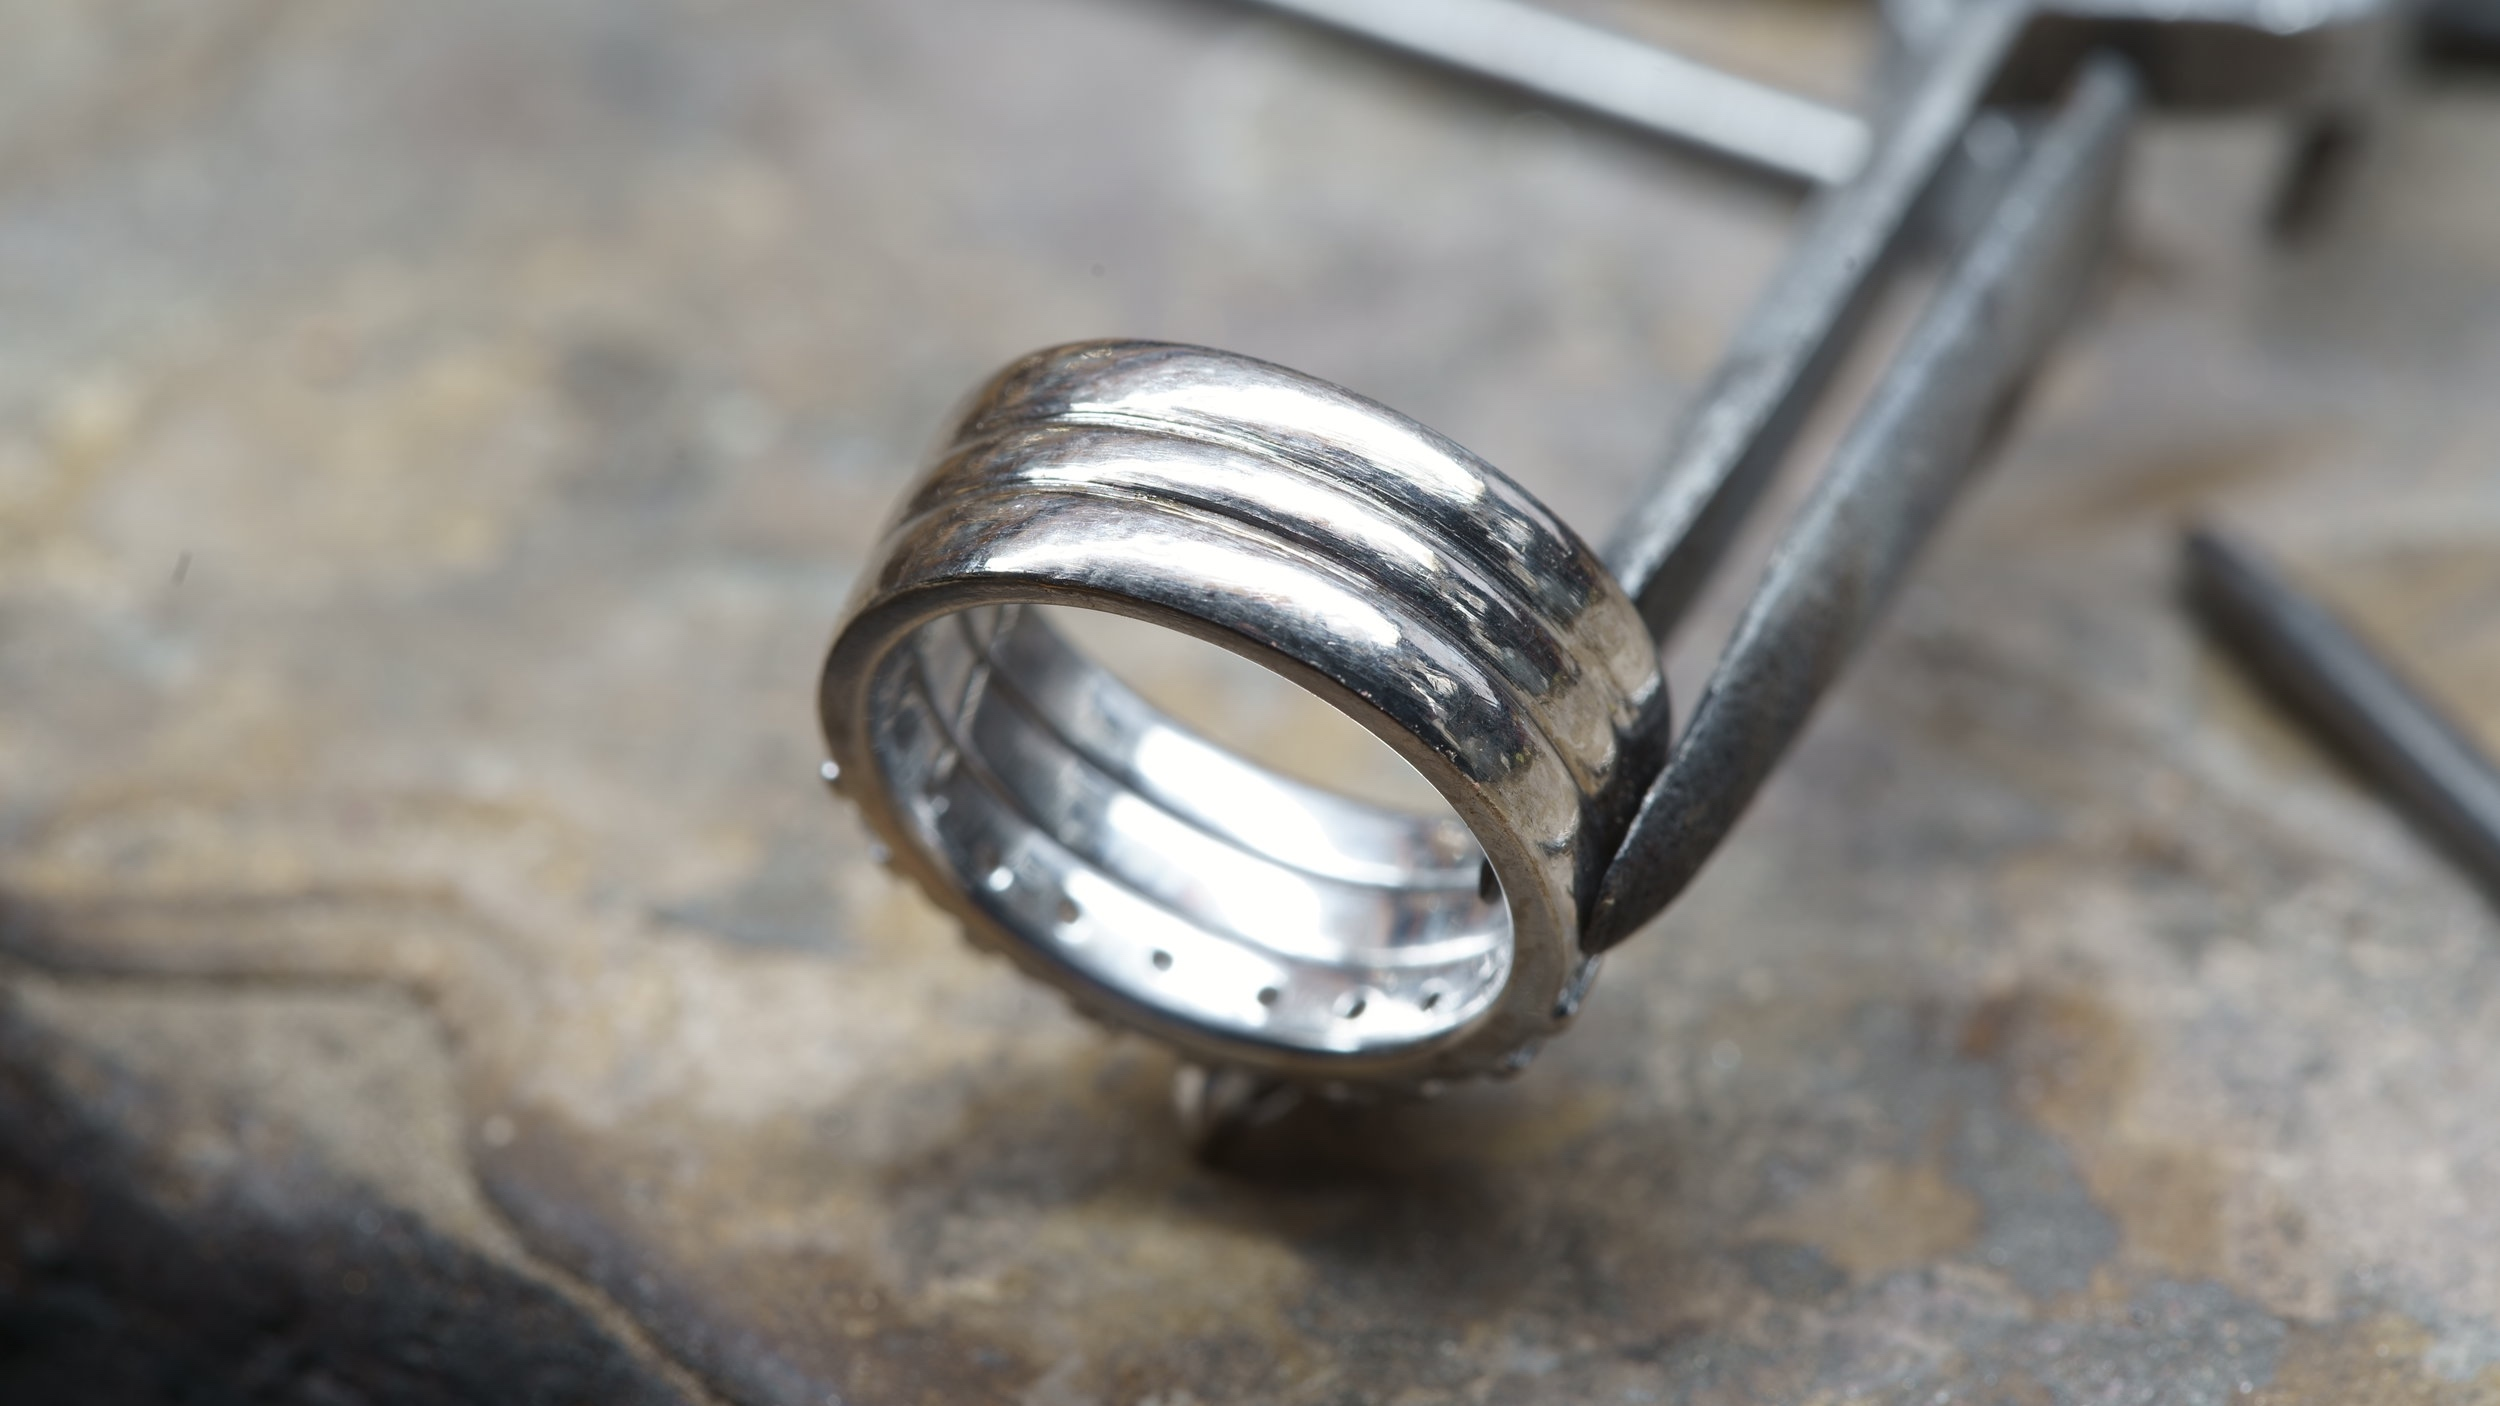 The ring restored after hours of burnishing.